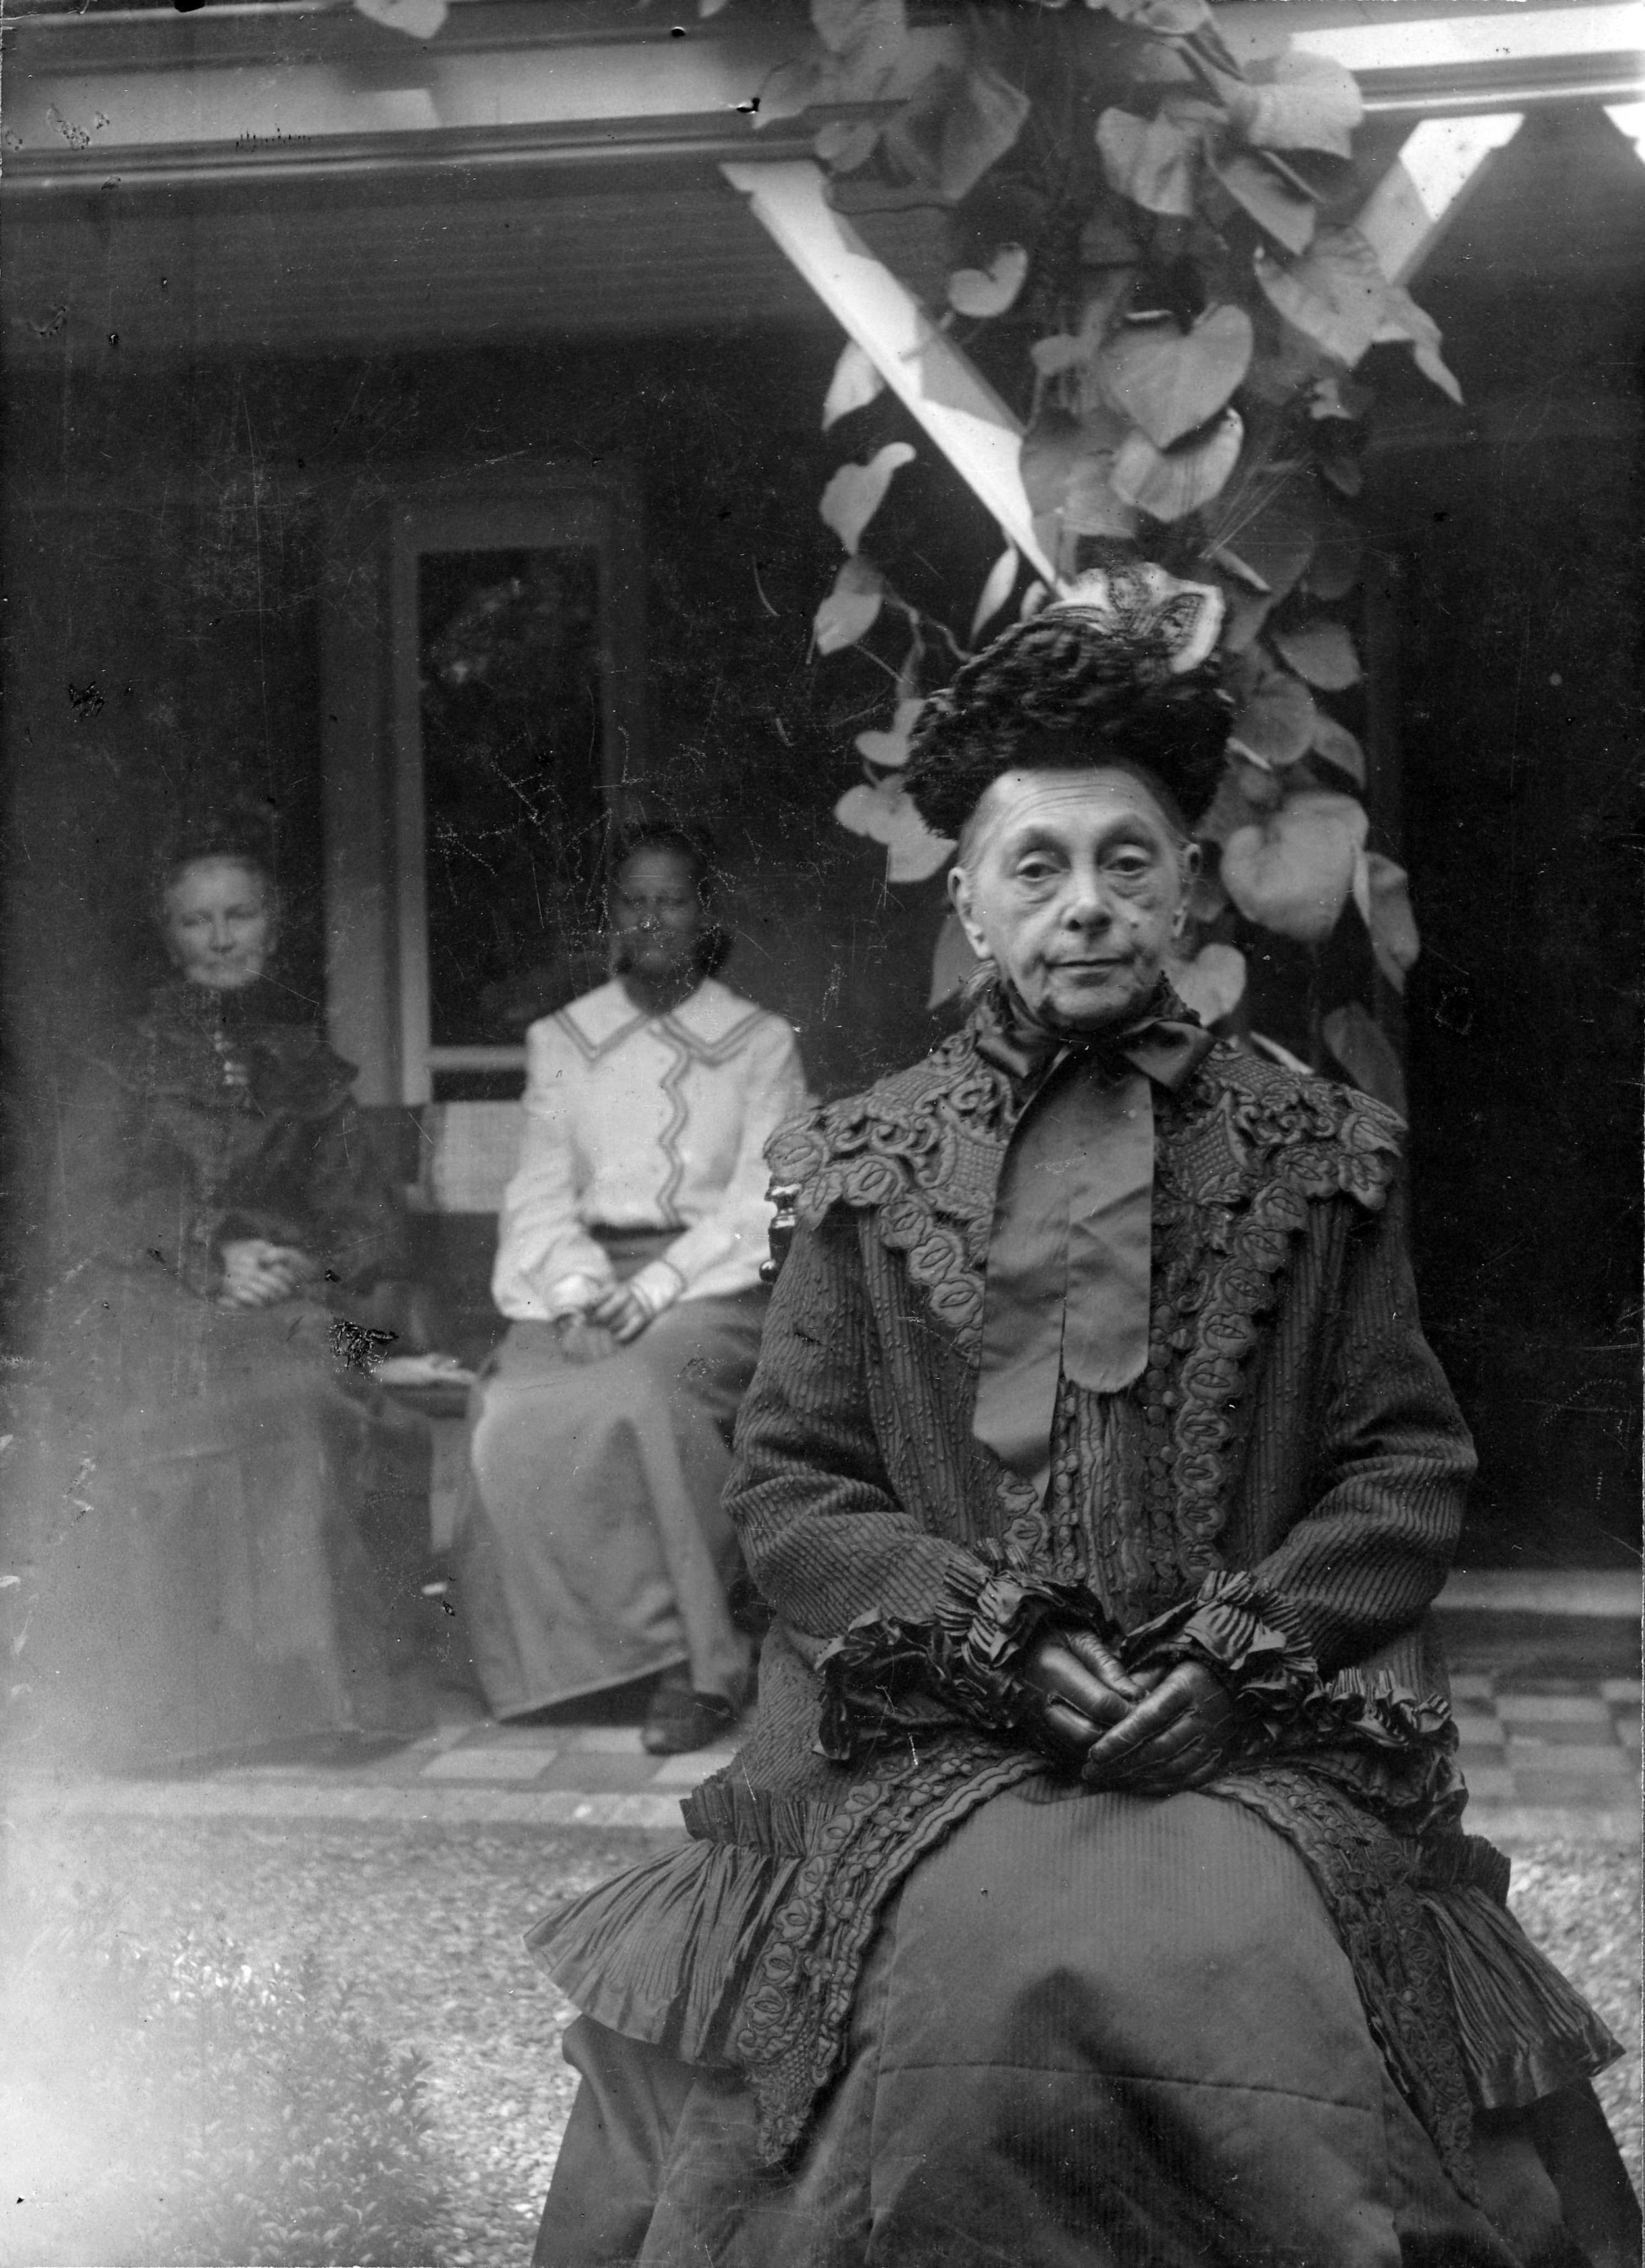 1904,_Old_woman_from_The_Hague_in_mourning_dress.jpg